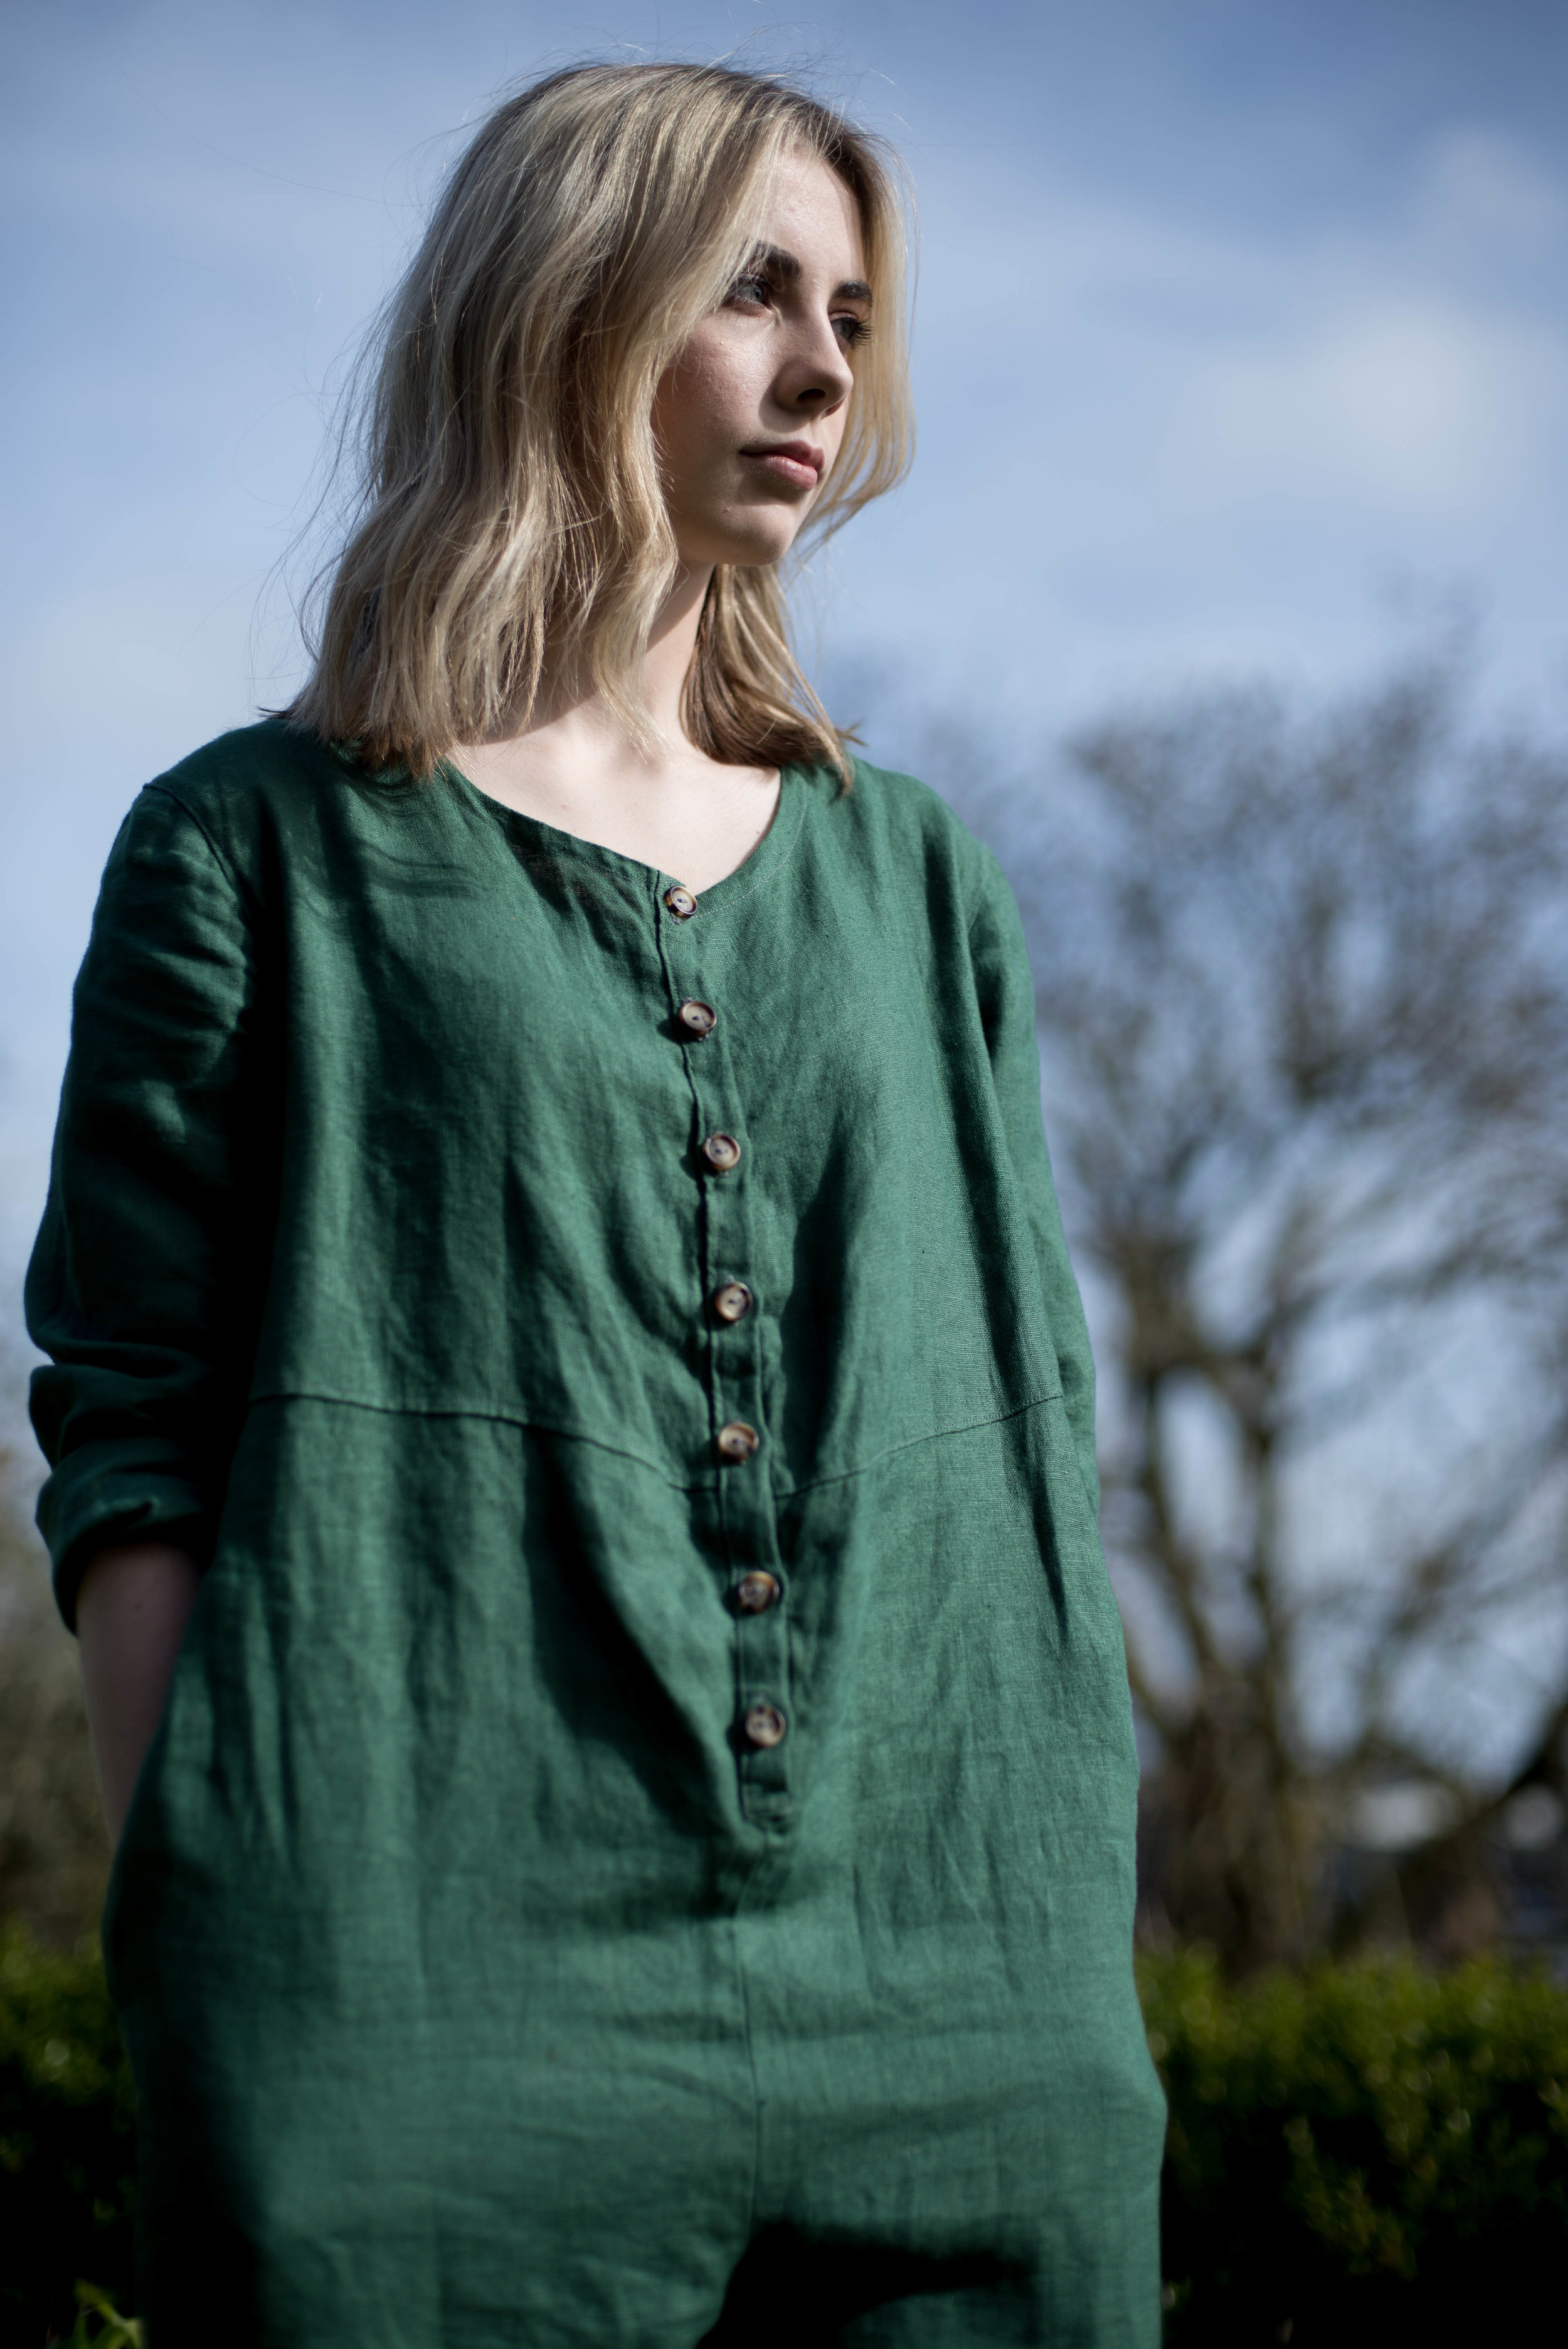 Rosie wearing the RHEA OVERALLS in green.